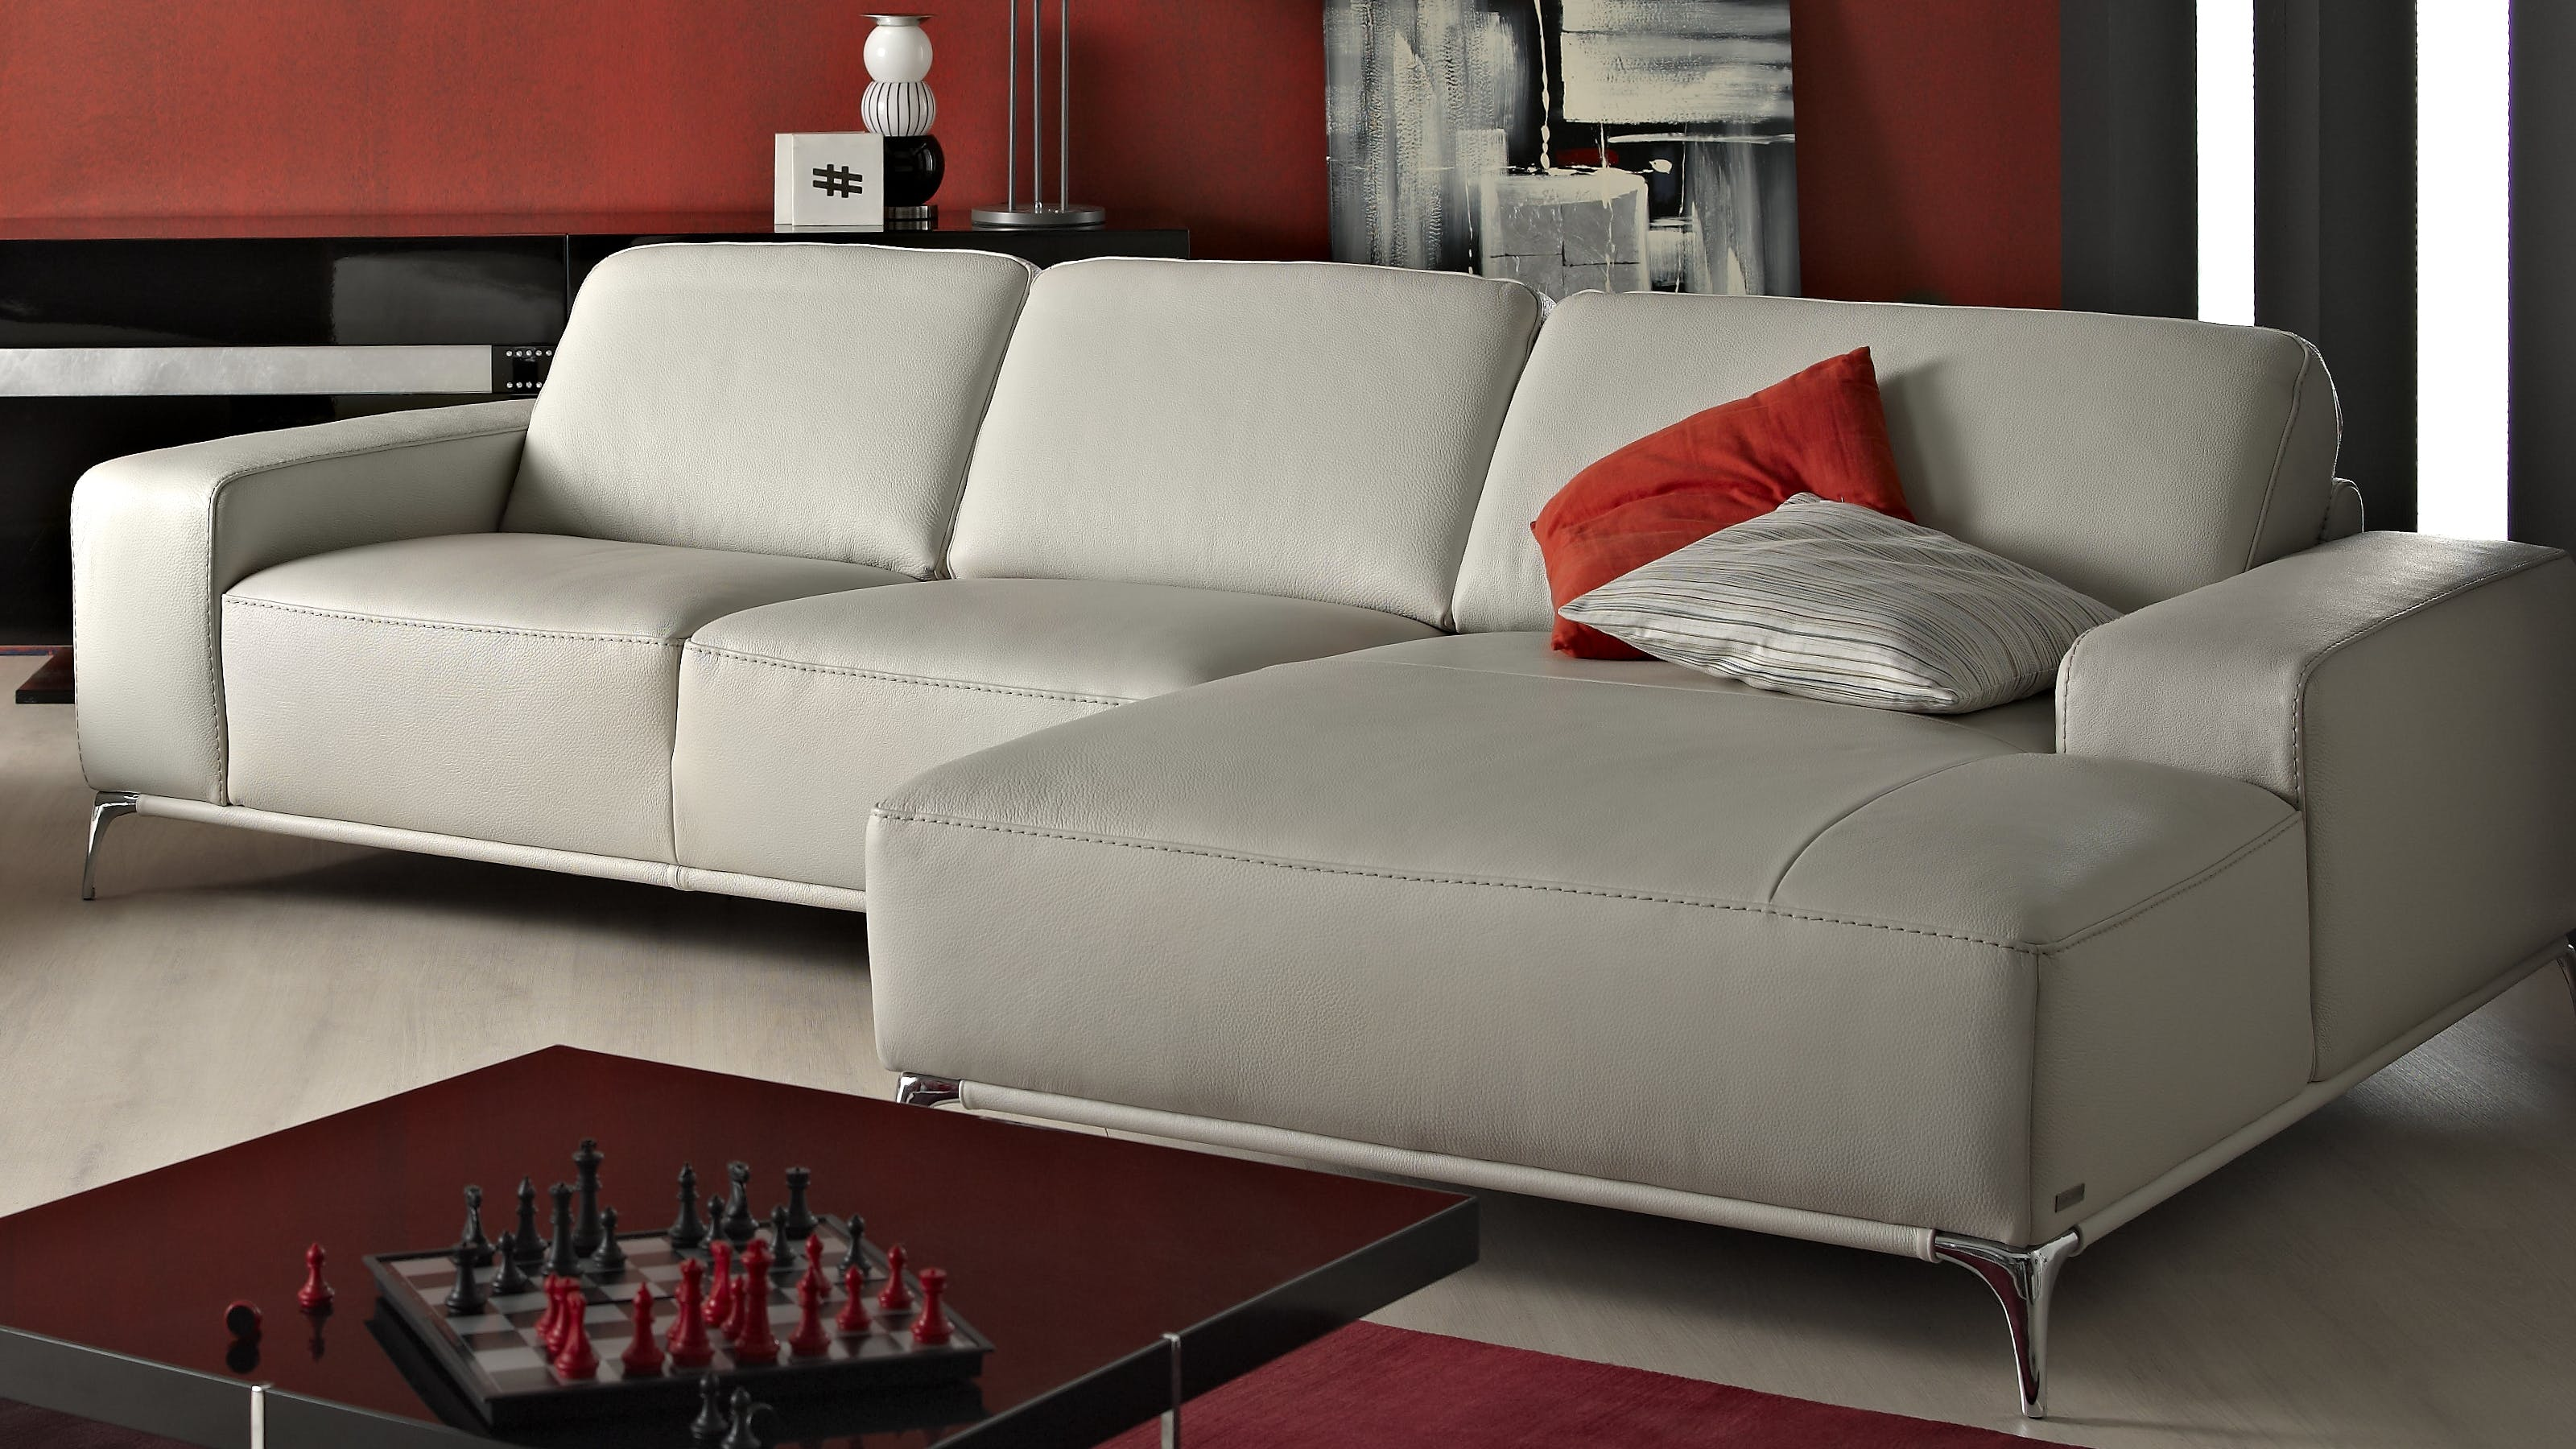 Saporini artemi full leather 2 5 seater sofa with chaise for 2 seater chaise lounge